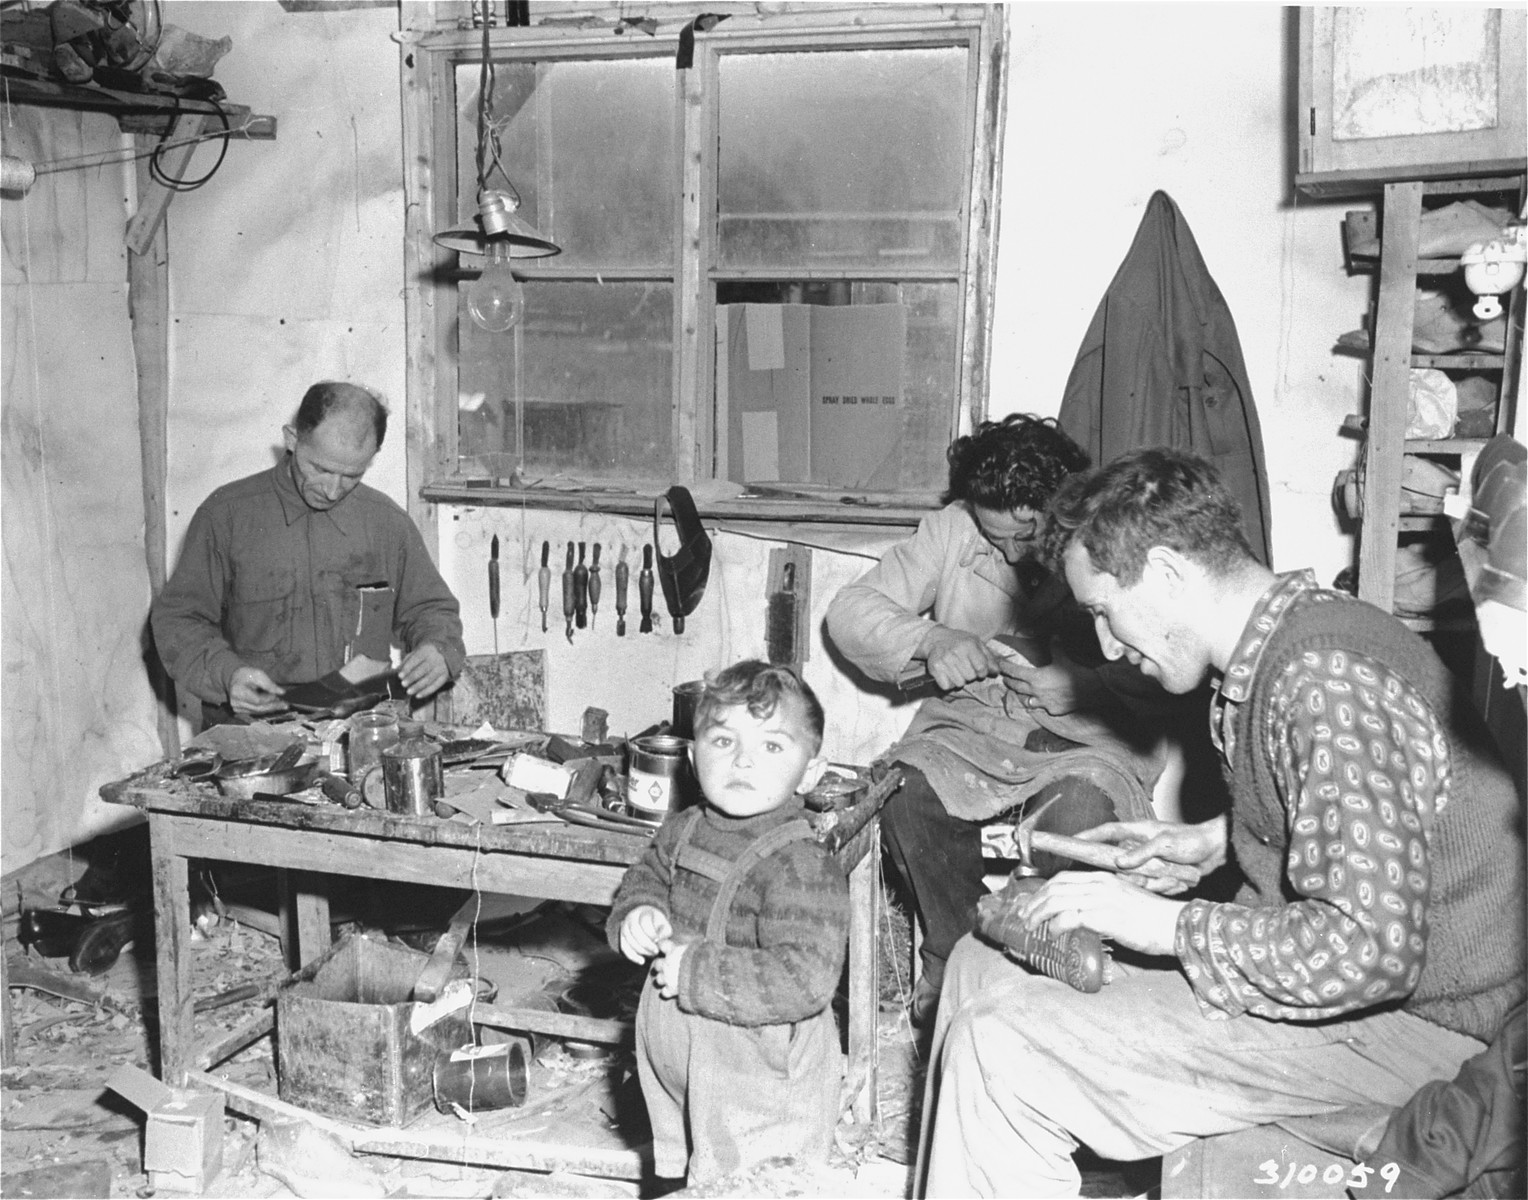 One of the shoe repair shops at the displaced persons camp in Wetzlar.